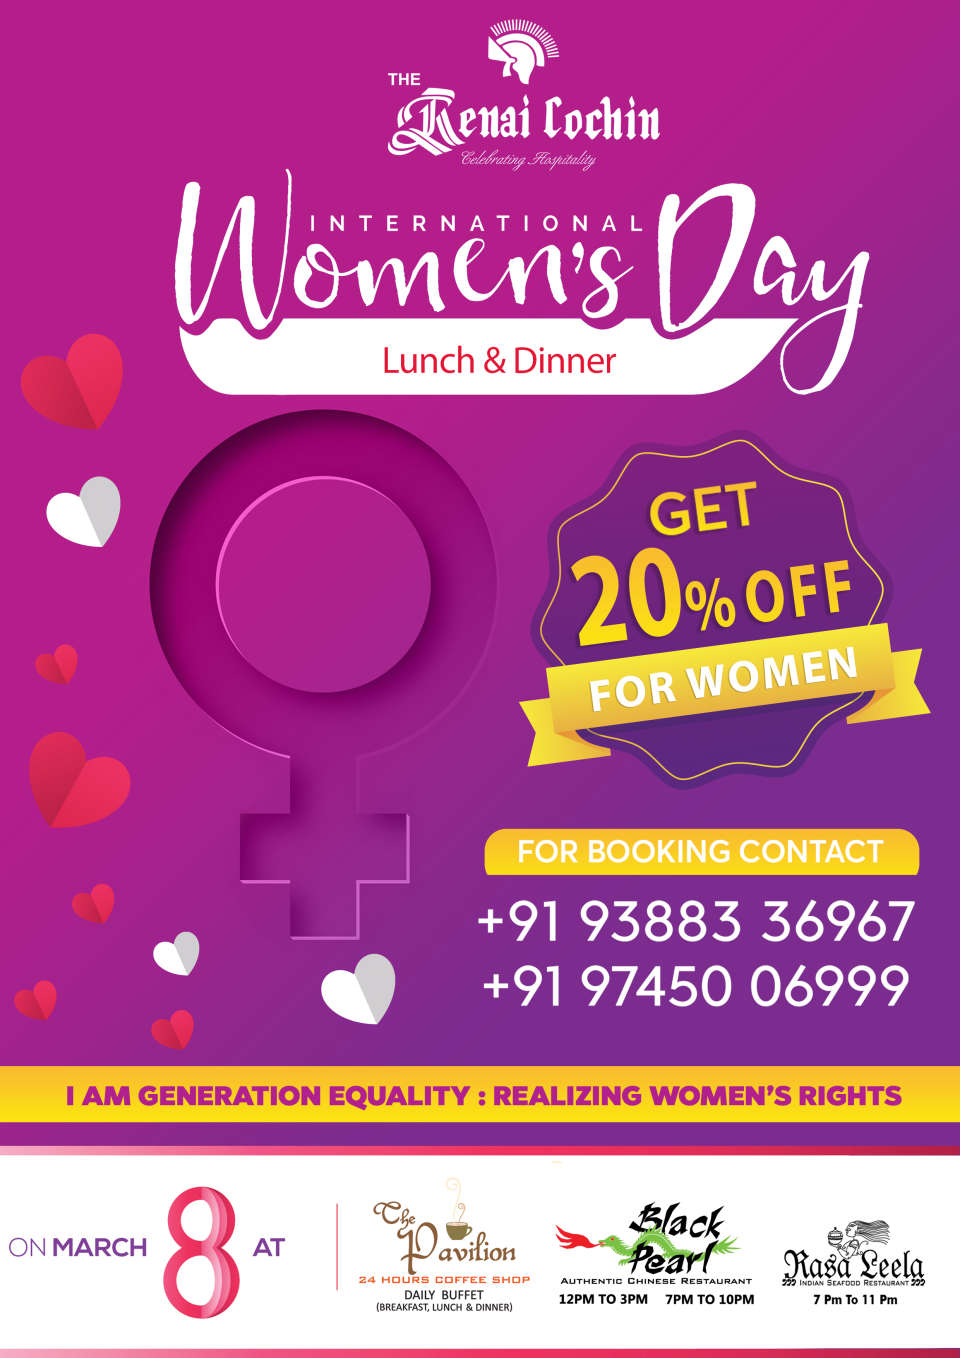 Get 20 off for women